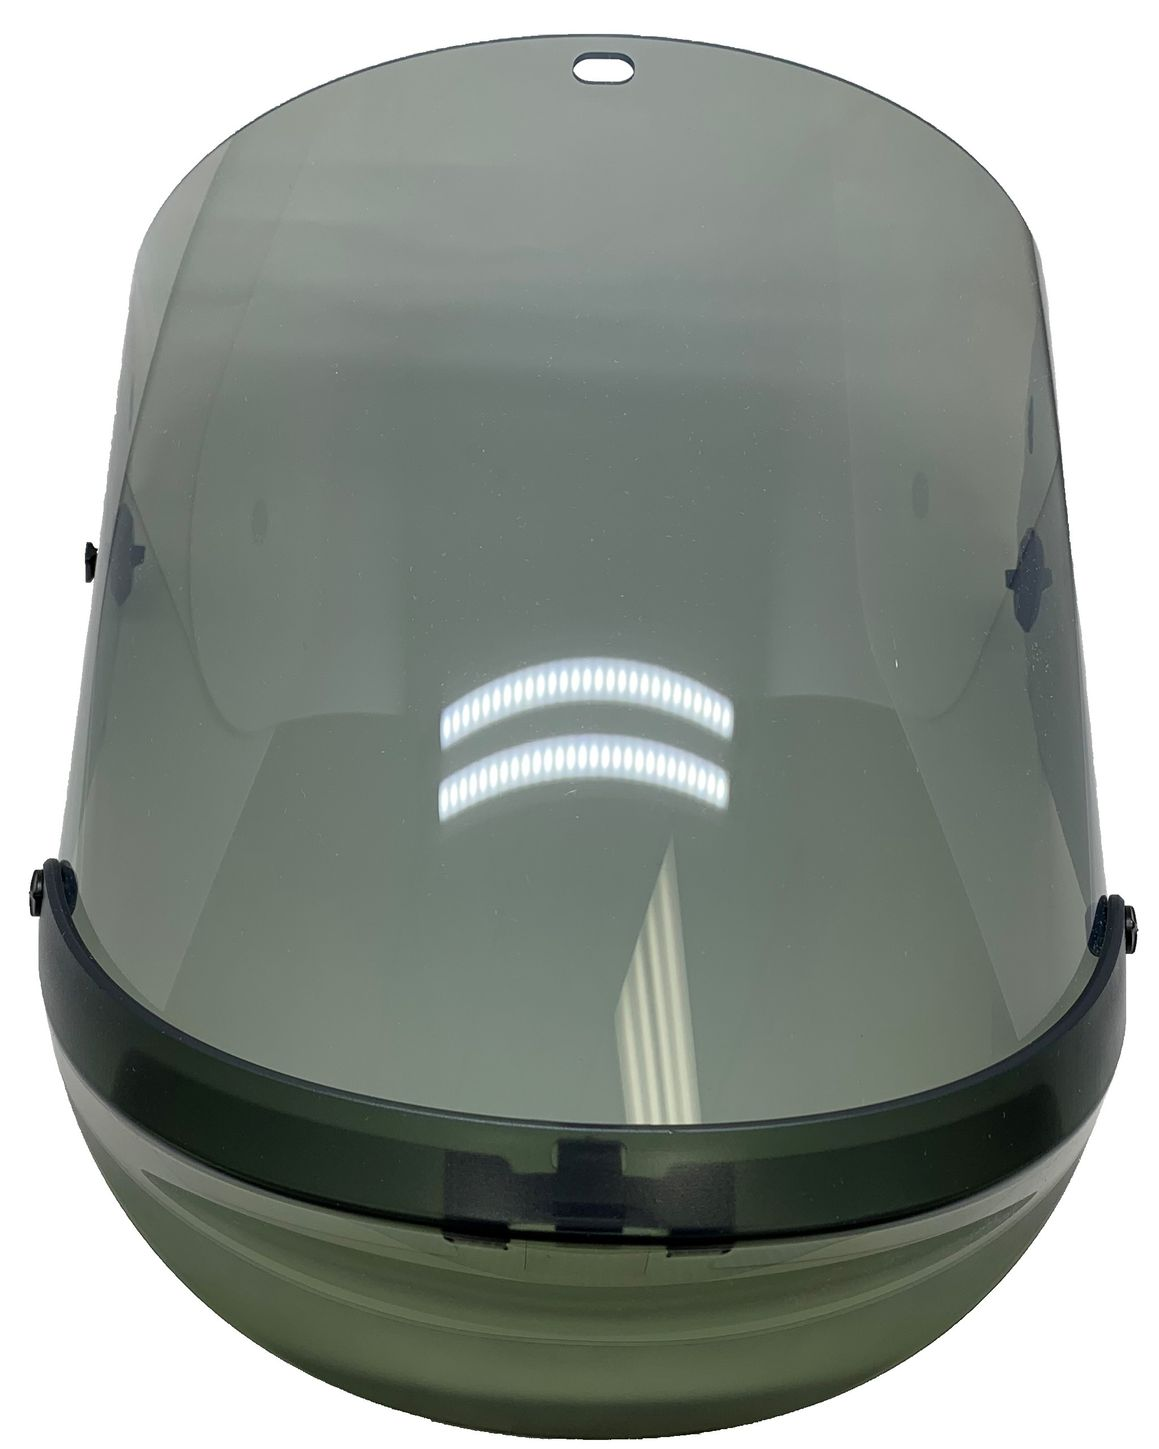 chicago-protective-apparel-replacement-visors-for-face-shields-wv-arc-12-grey-front.jpg